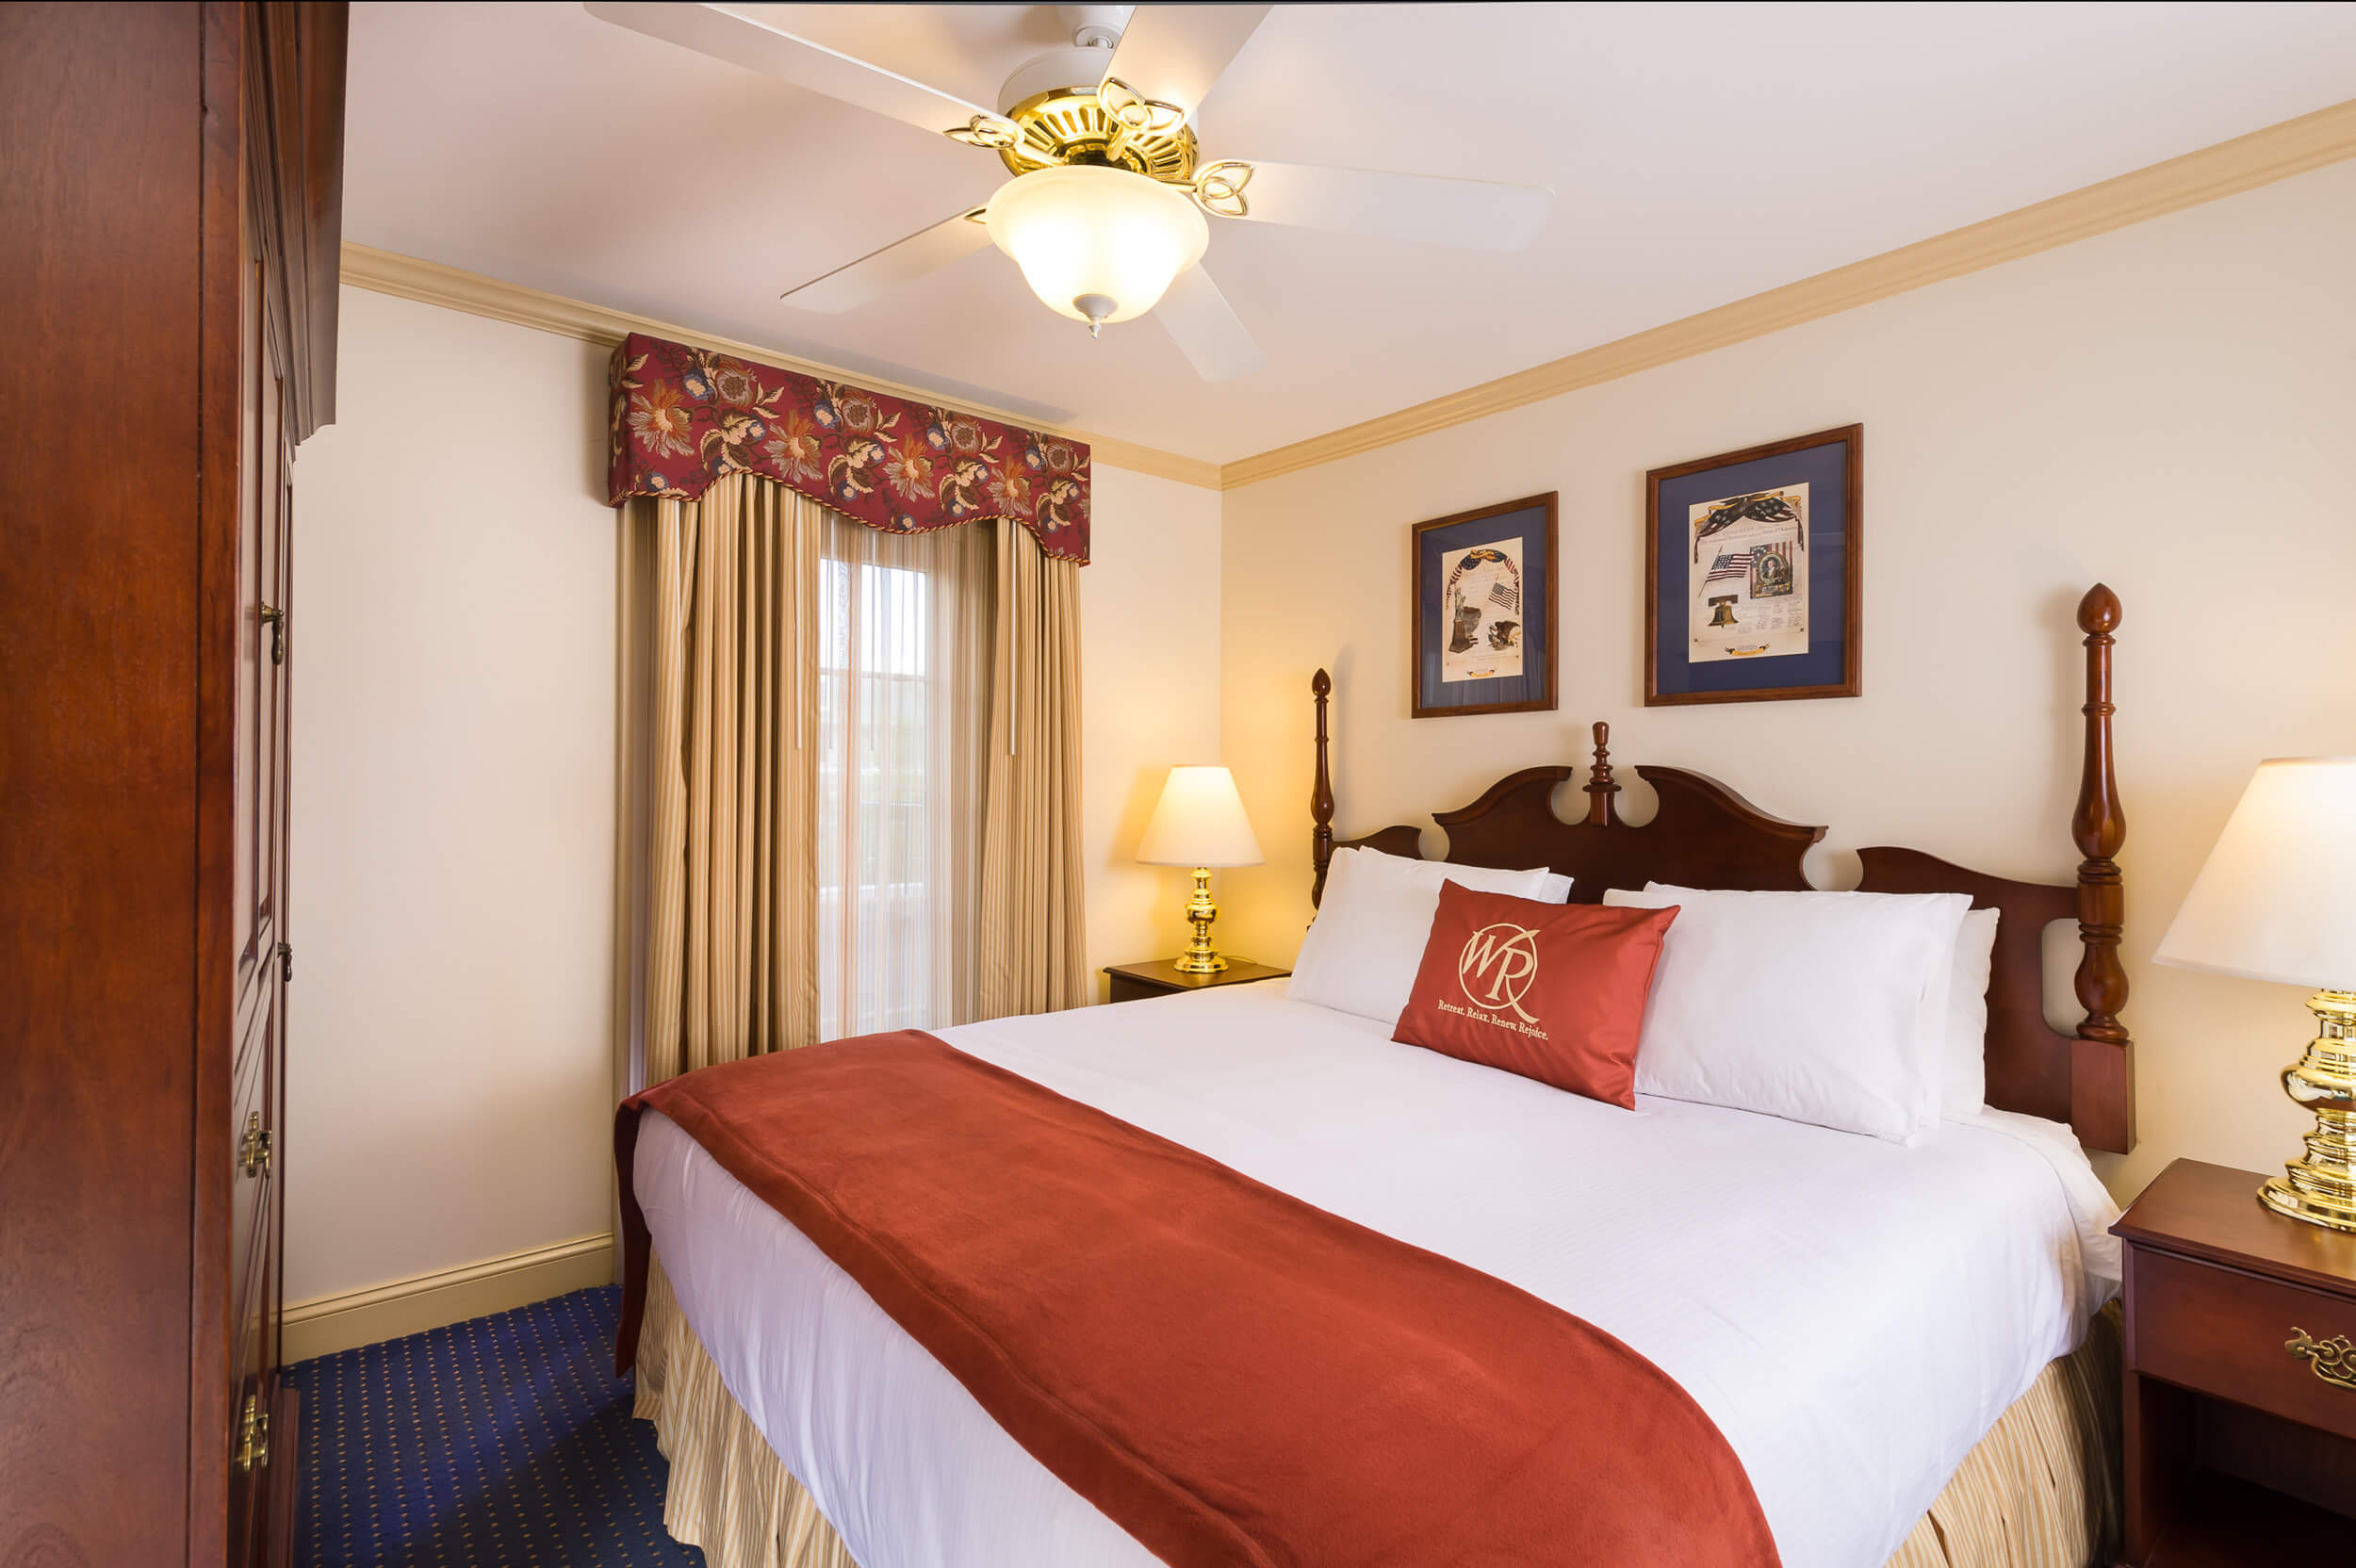 One-Bedroom Villa at our resorts in Williamsburg VA | Westgate Historic Williamsburg Resort | Westgate Resorts